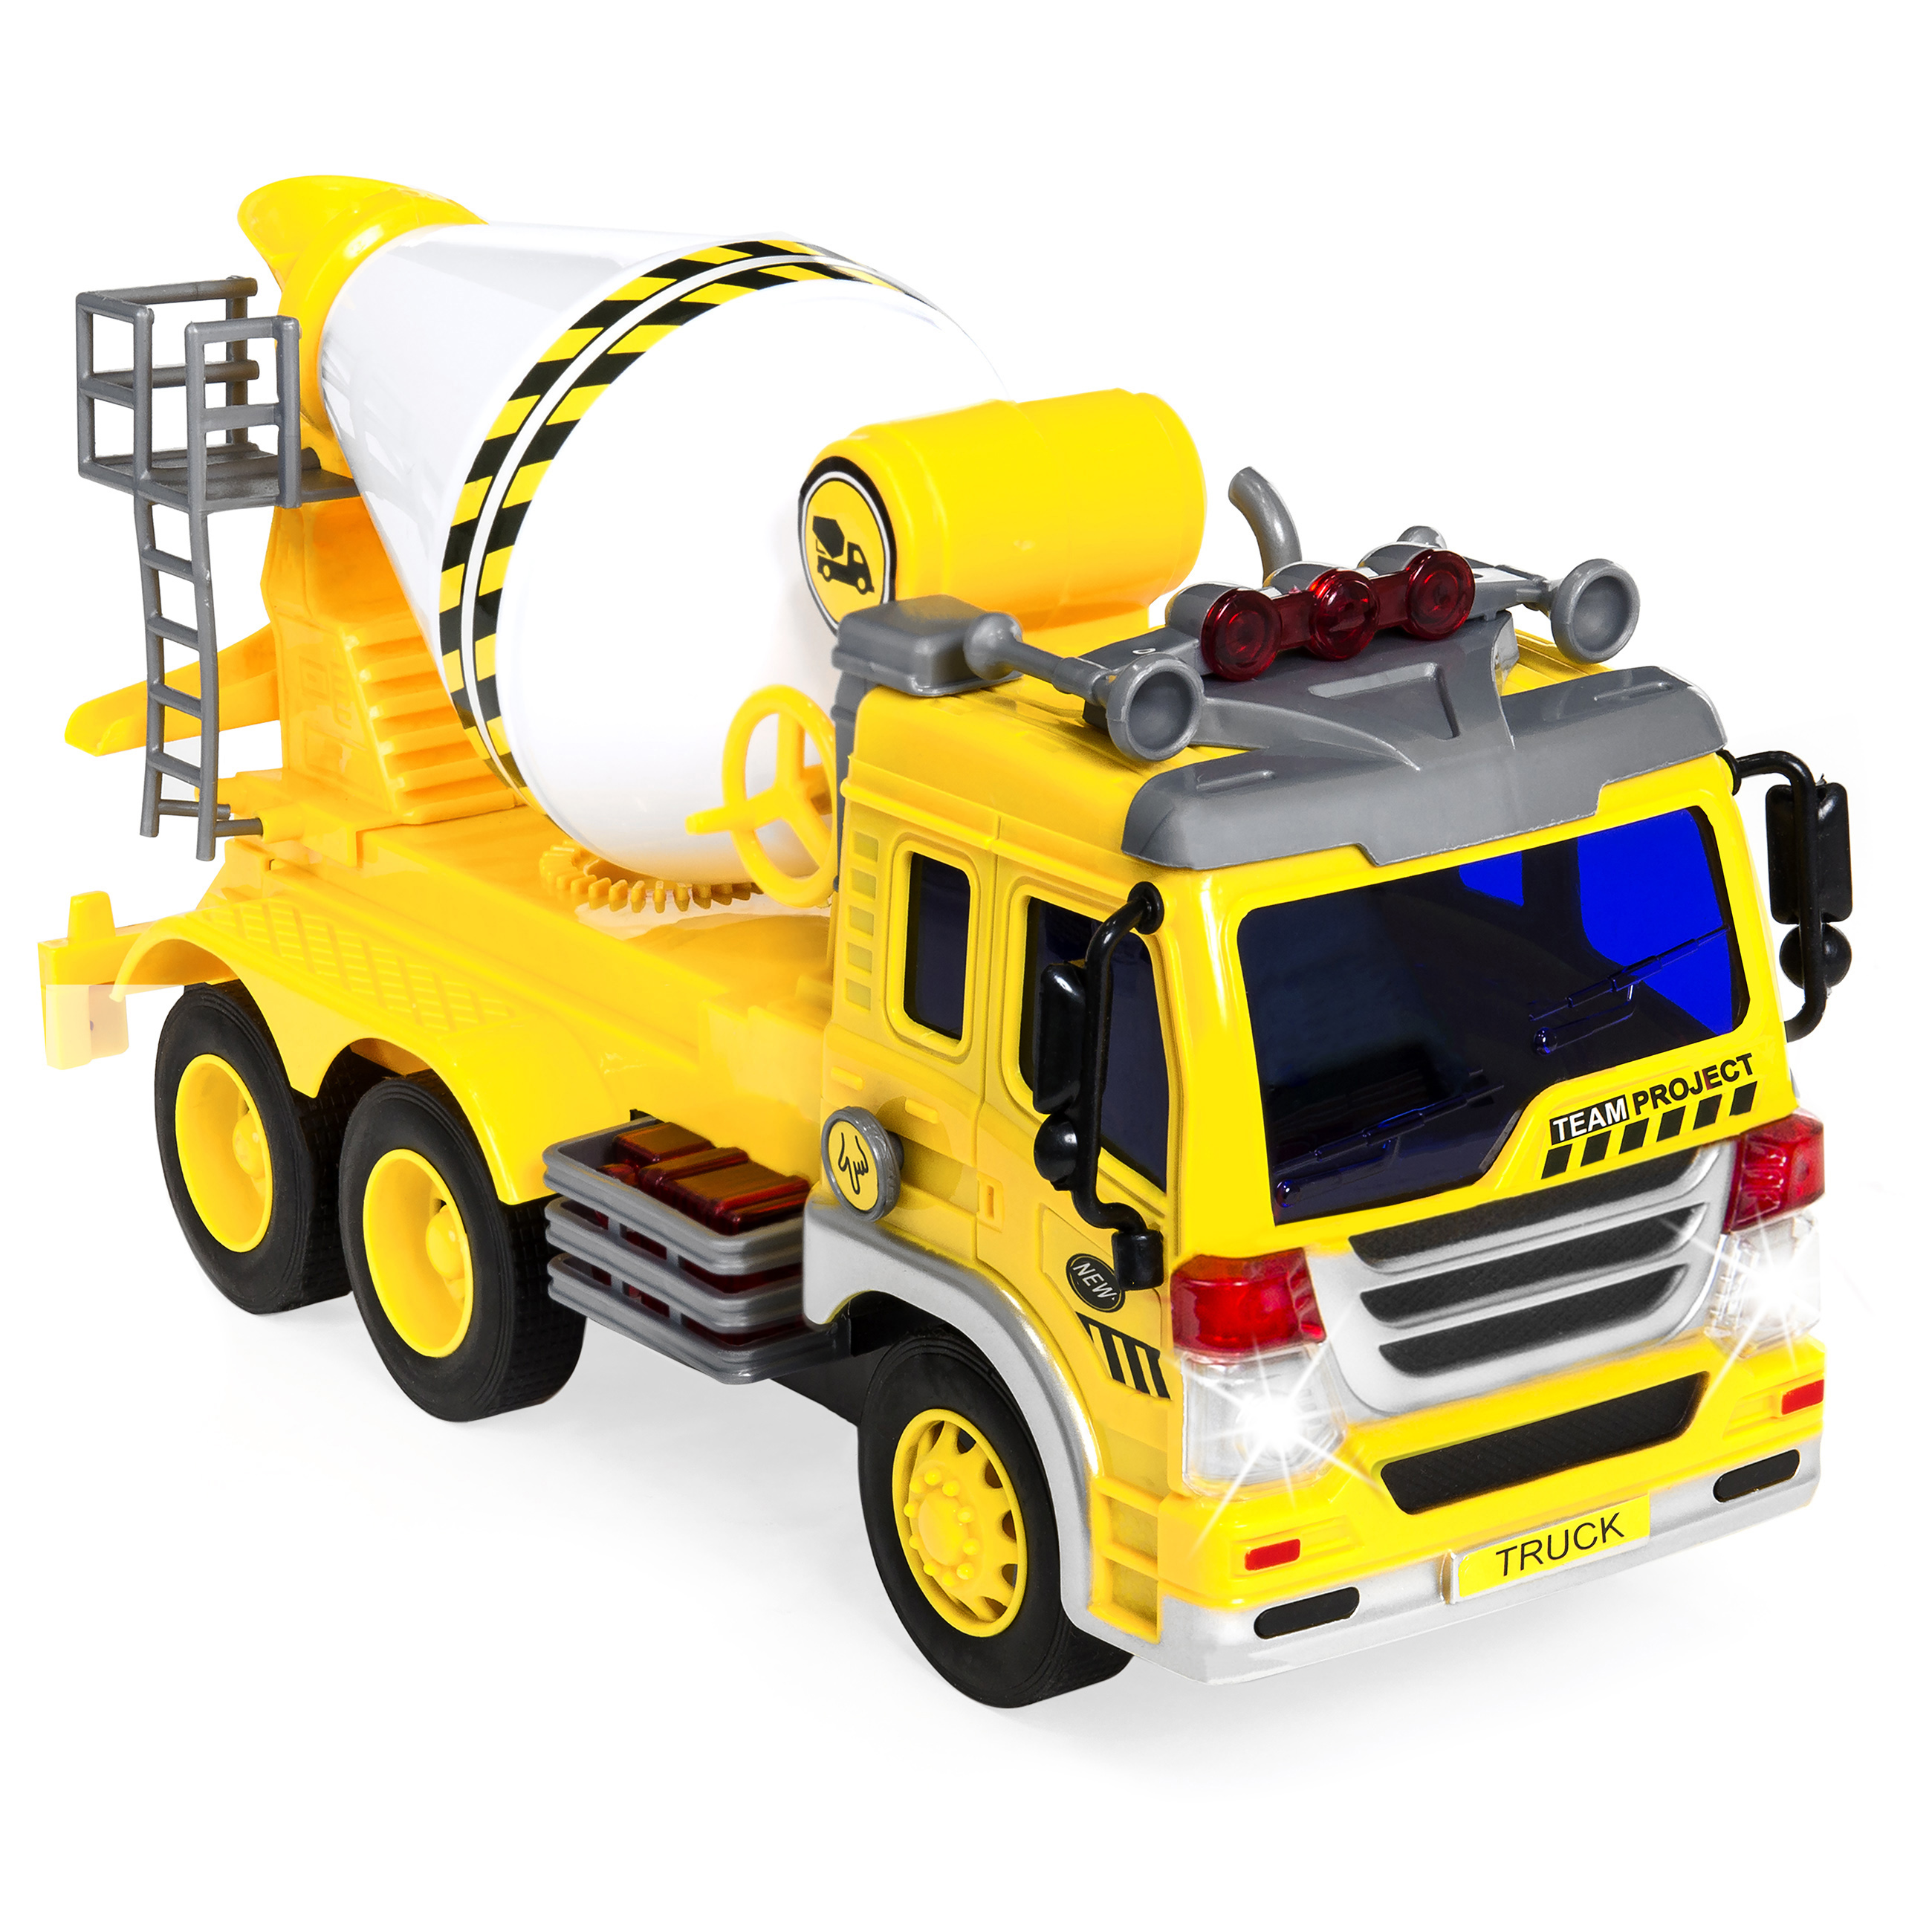 Best Choice Products 1 16 Scale Friction Powered Toy Cement Mixer Truck w  Lights and... by Best Choice Products